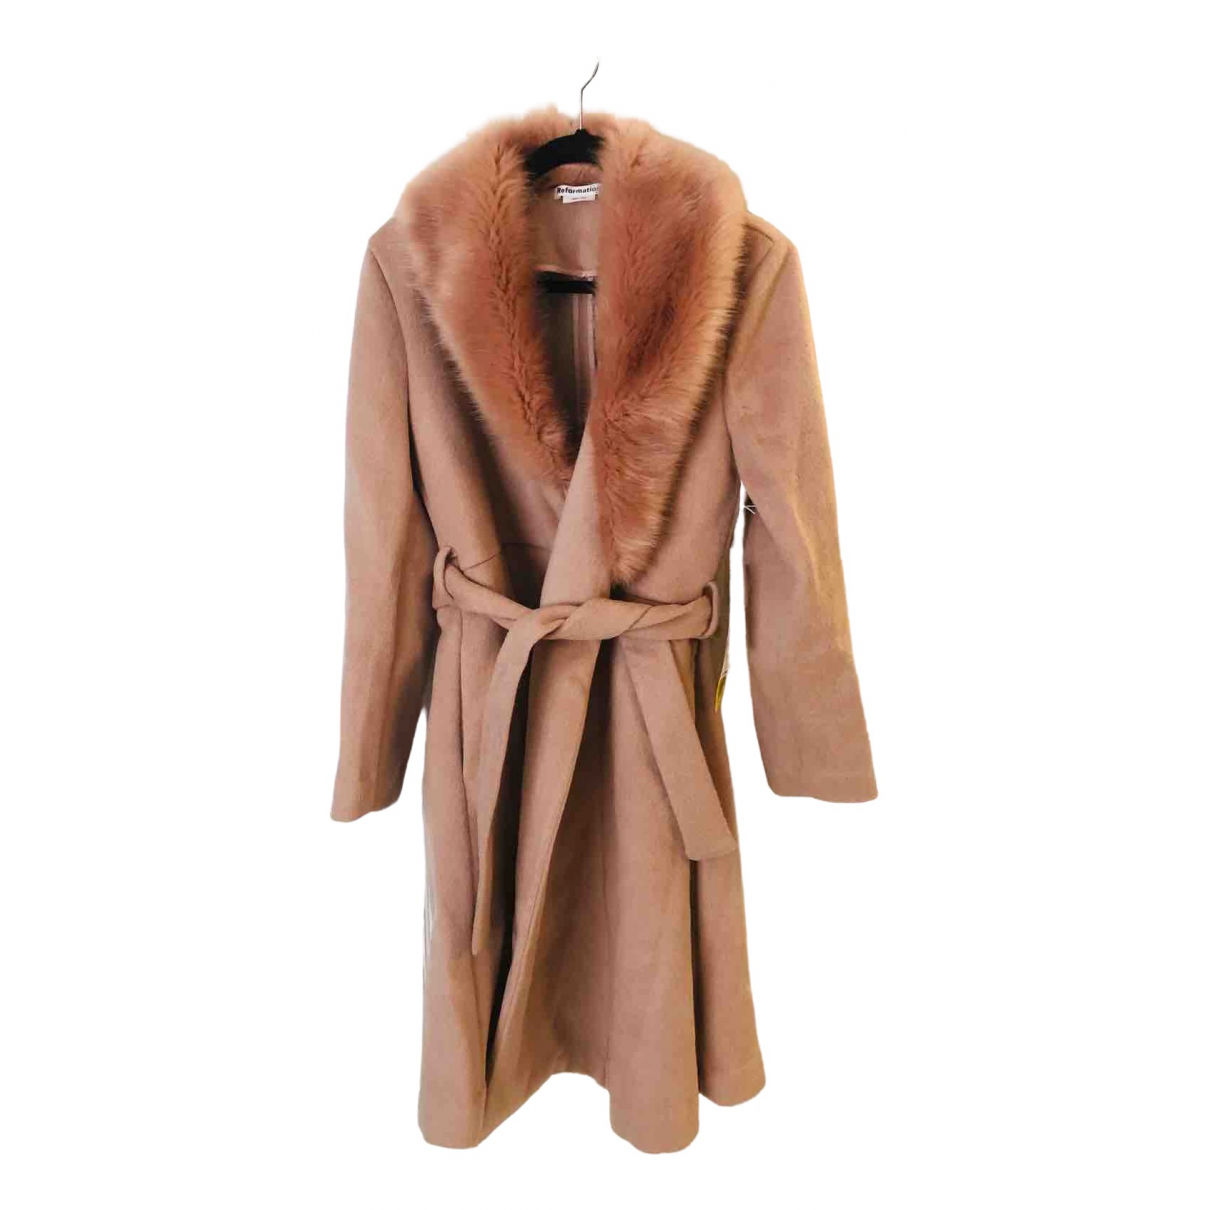 Reformation \N Pink Wool coat for Women M International